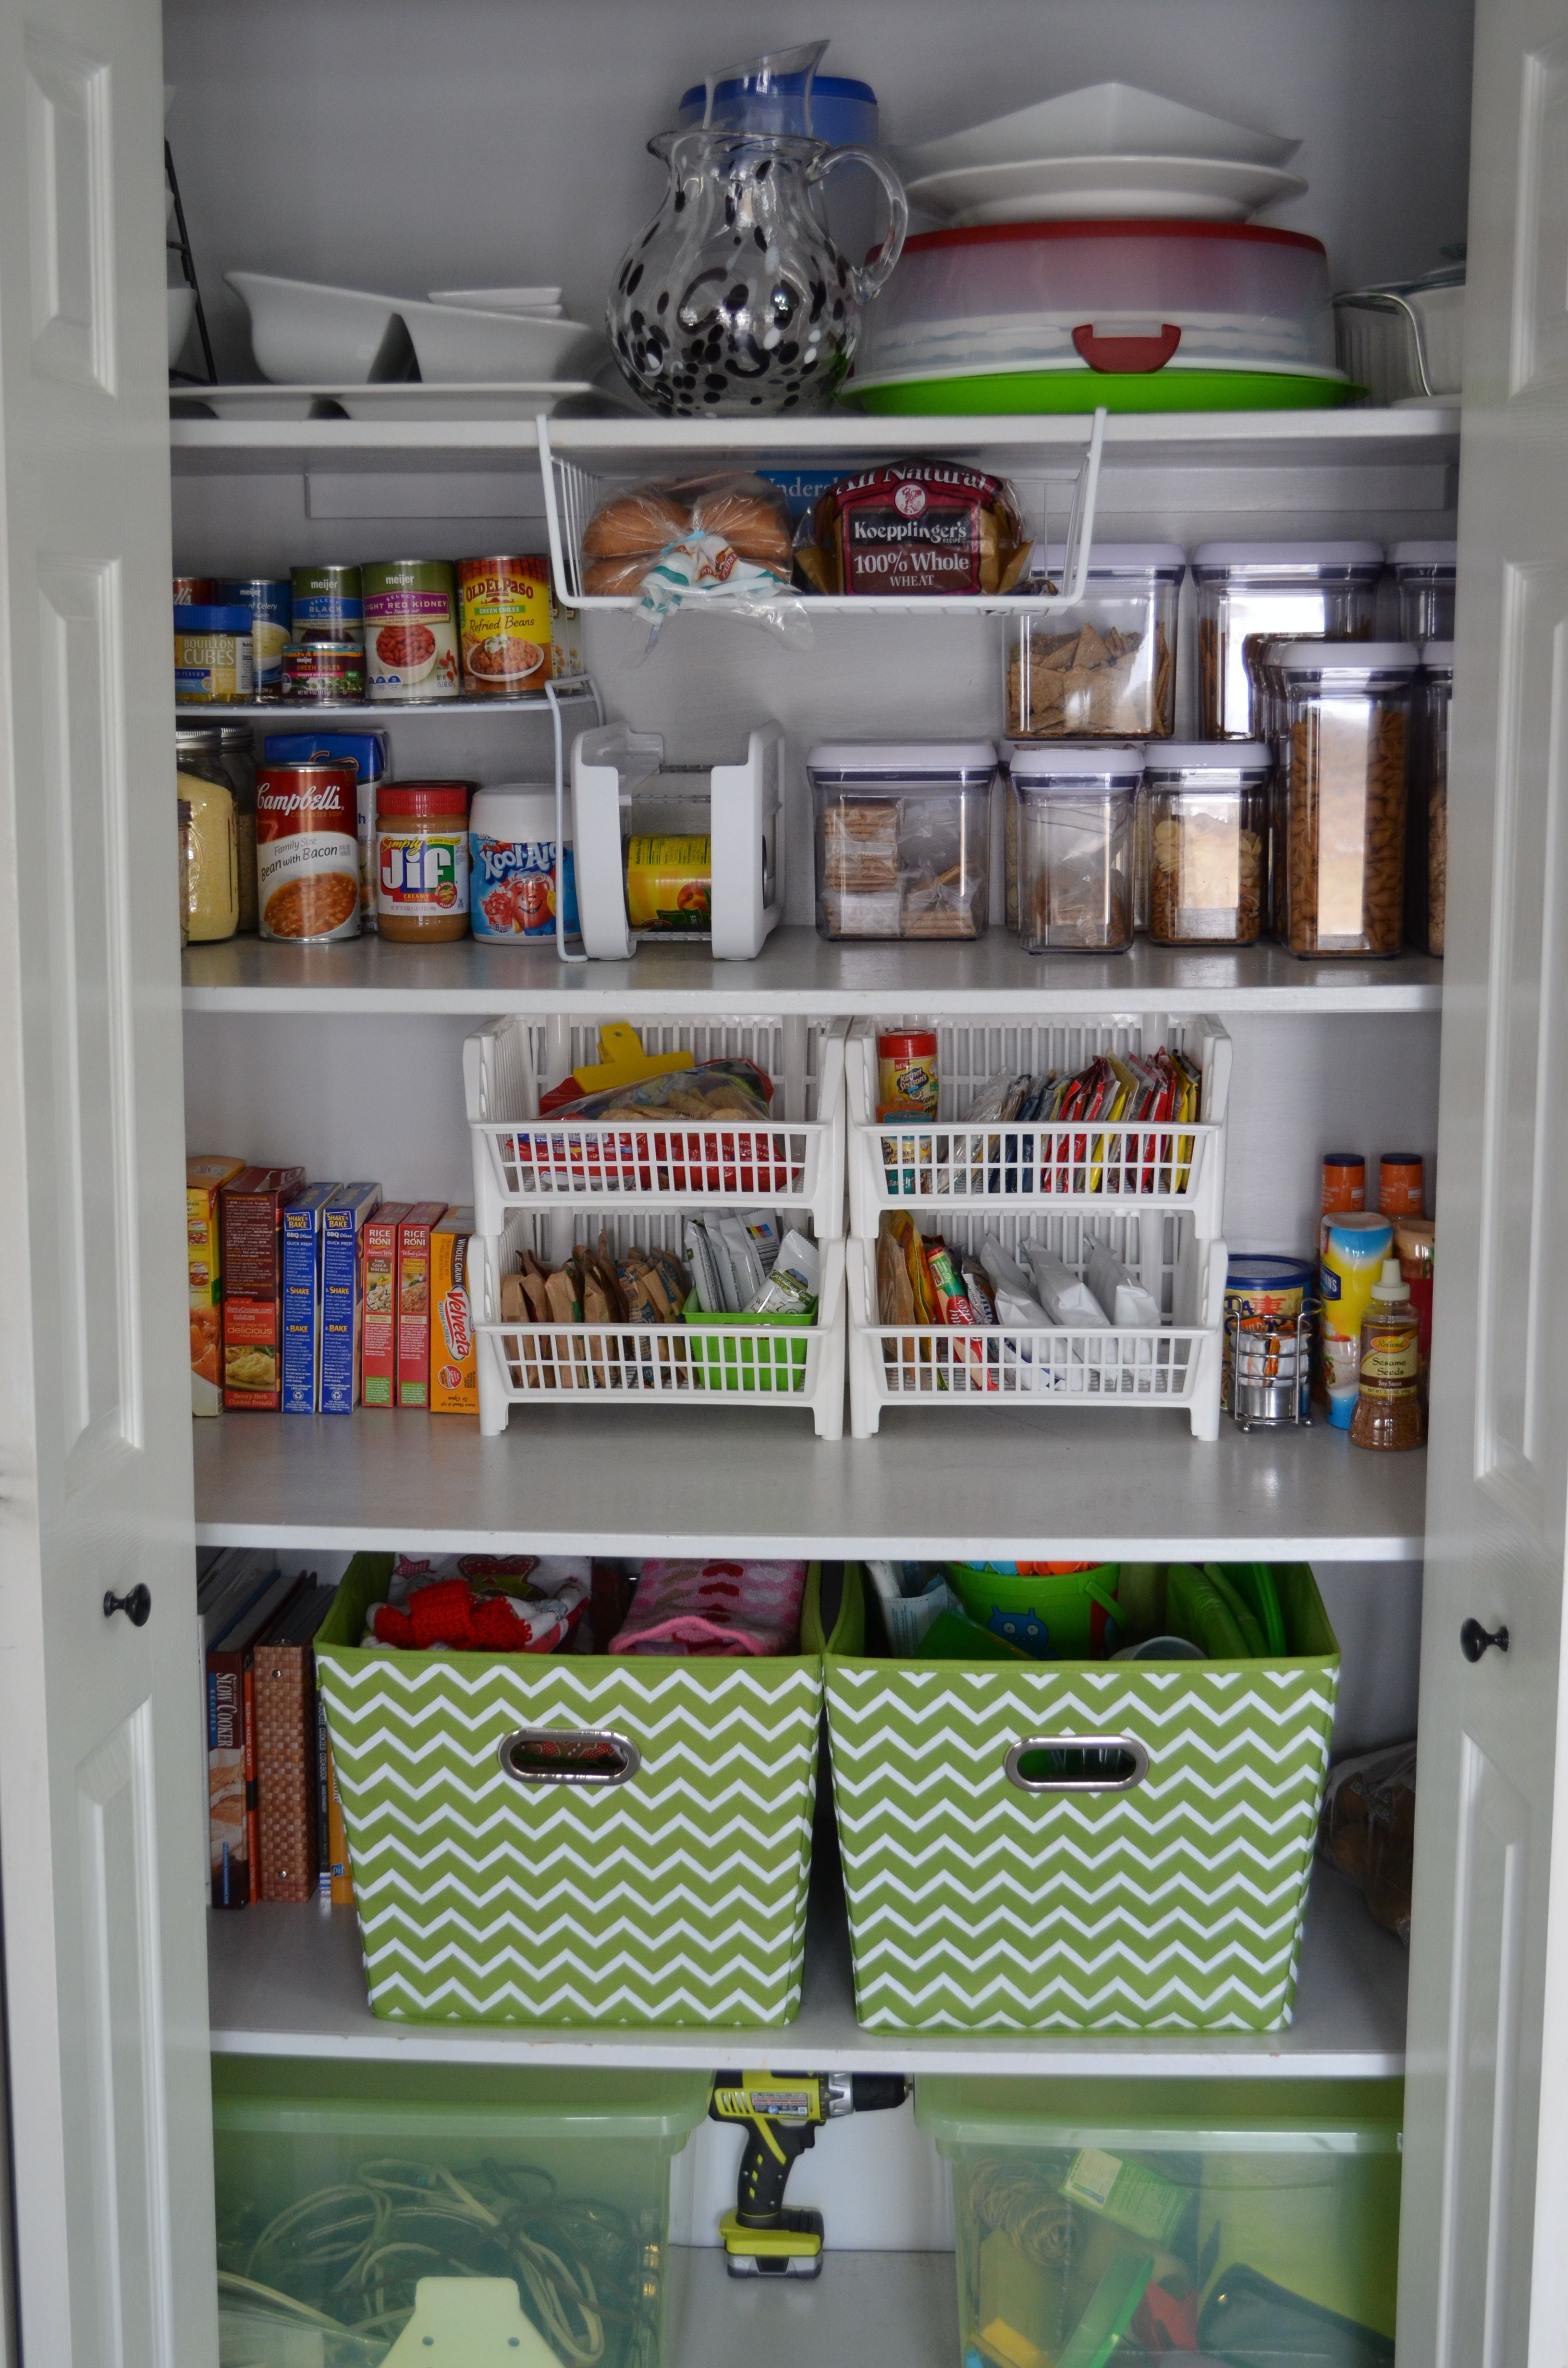 Organizing Kitchen Cabinets Diarist Project Kitchen Organization Kitchen Hacks Organization Kitchen Cabinet Organization